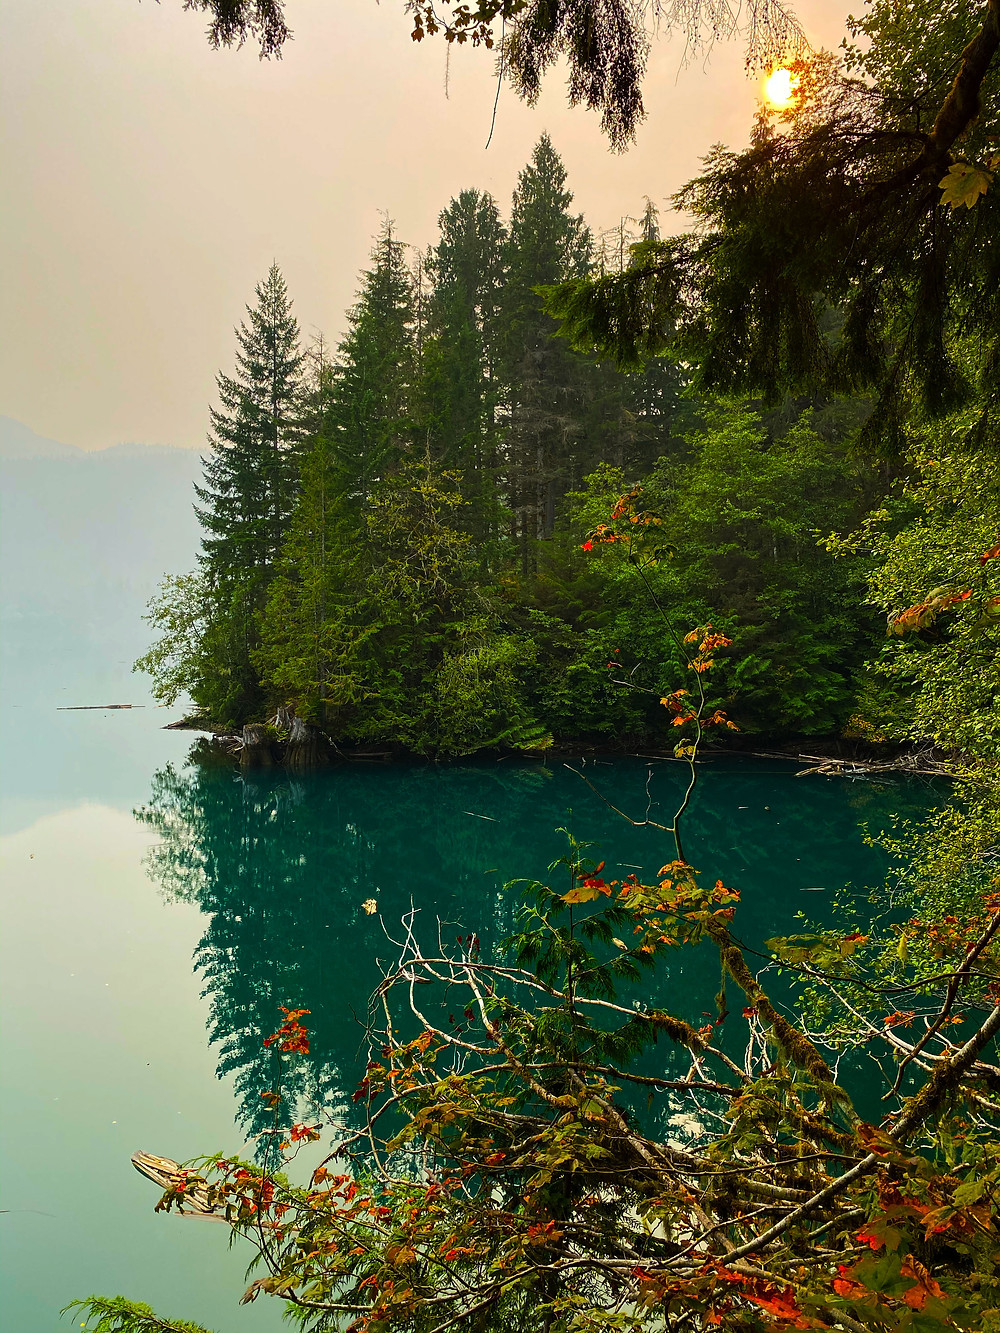 Baker Lake in Washington looking like a tropical paradise with waters as blue-green as the Caribbean, evergreen trees reaching all the way to the shore of the lake, and flowers everywhere